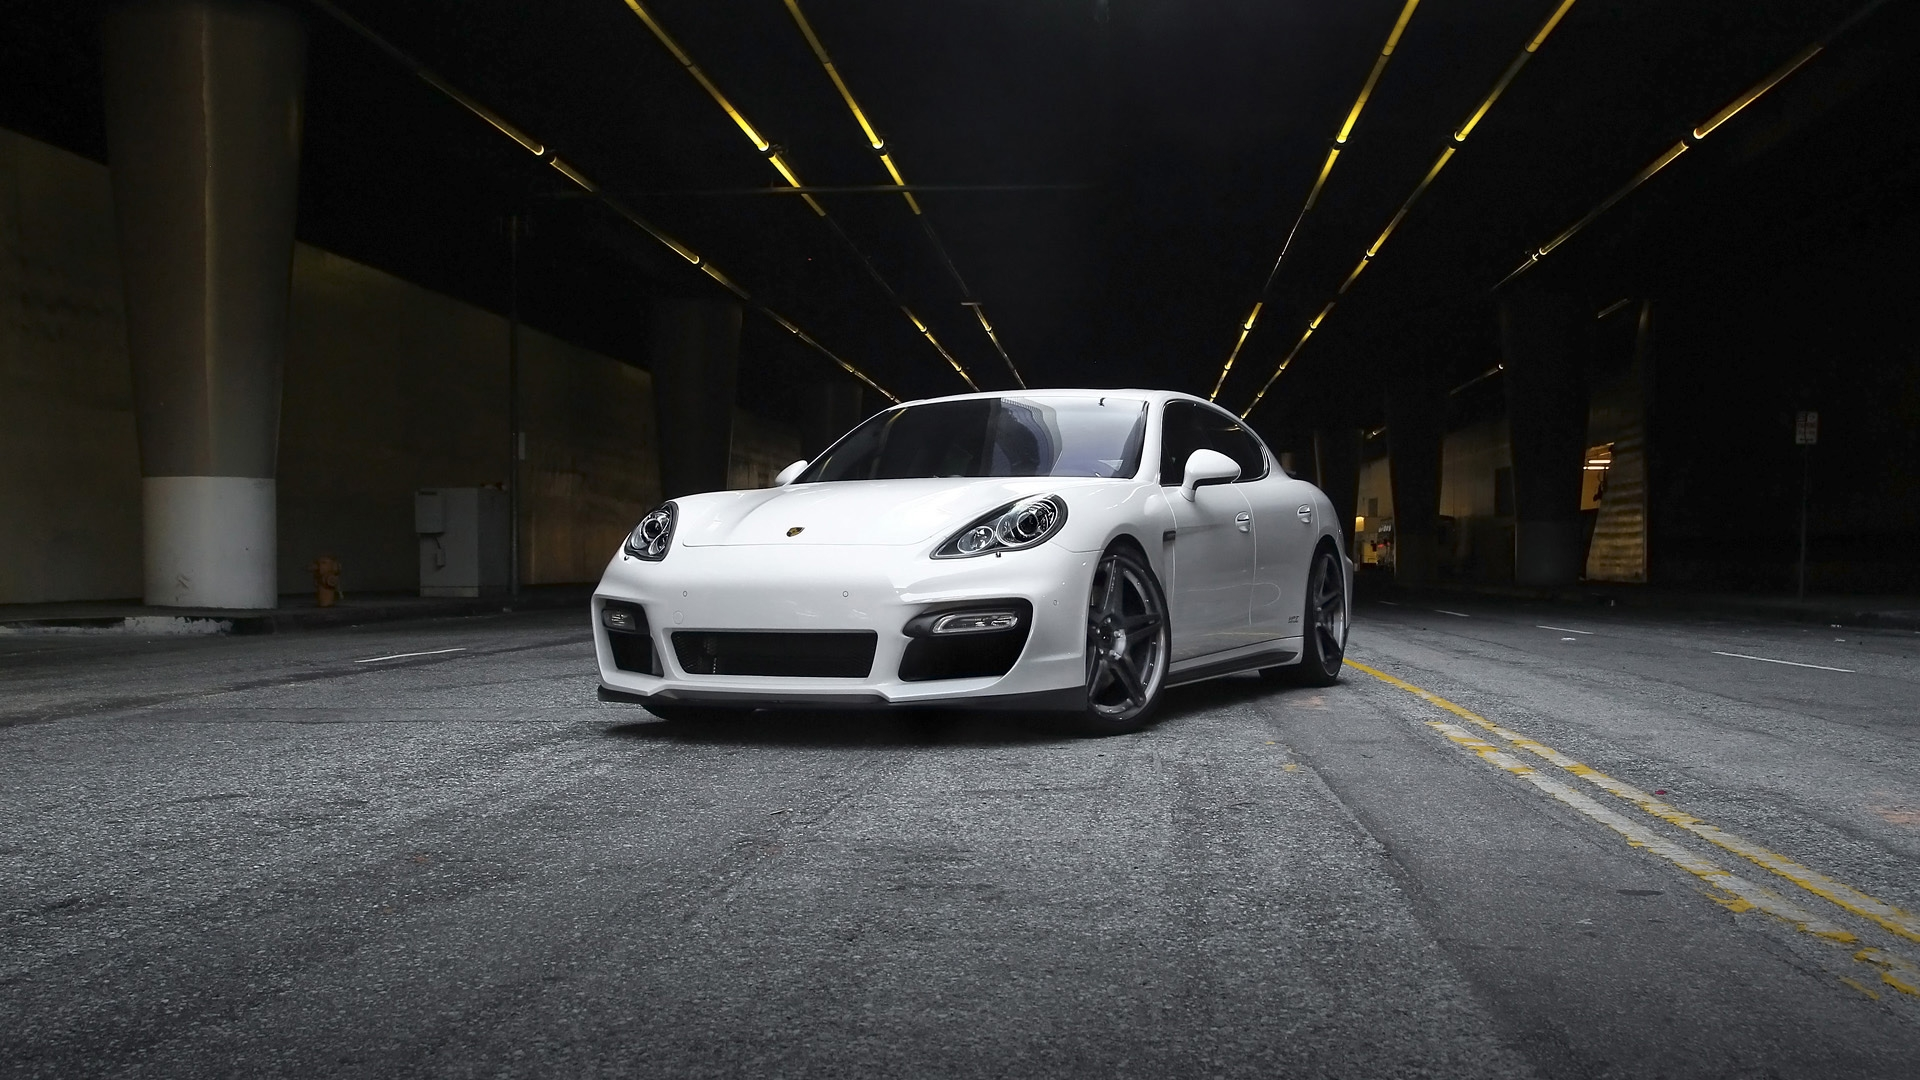 hd wallpapers hd 1080p desktop wallpapers 2011 vorsteiner porsche v